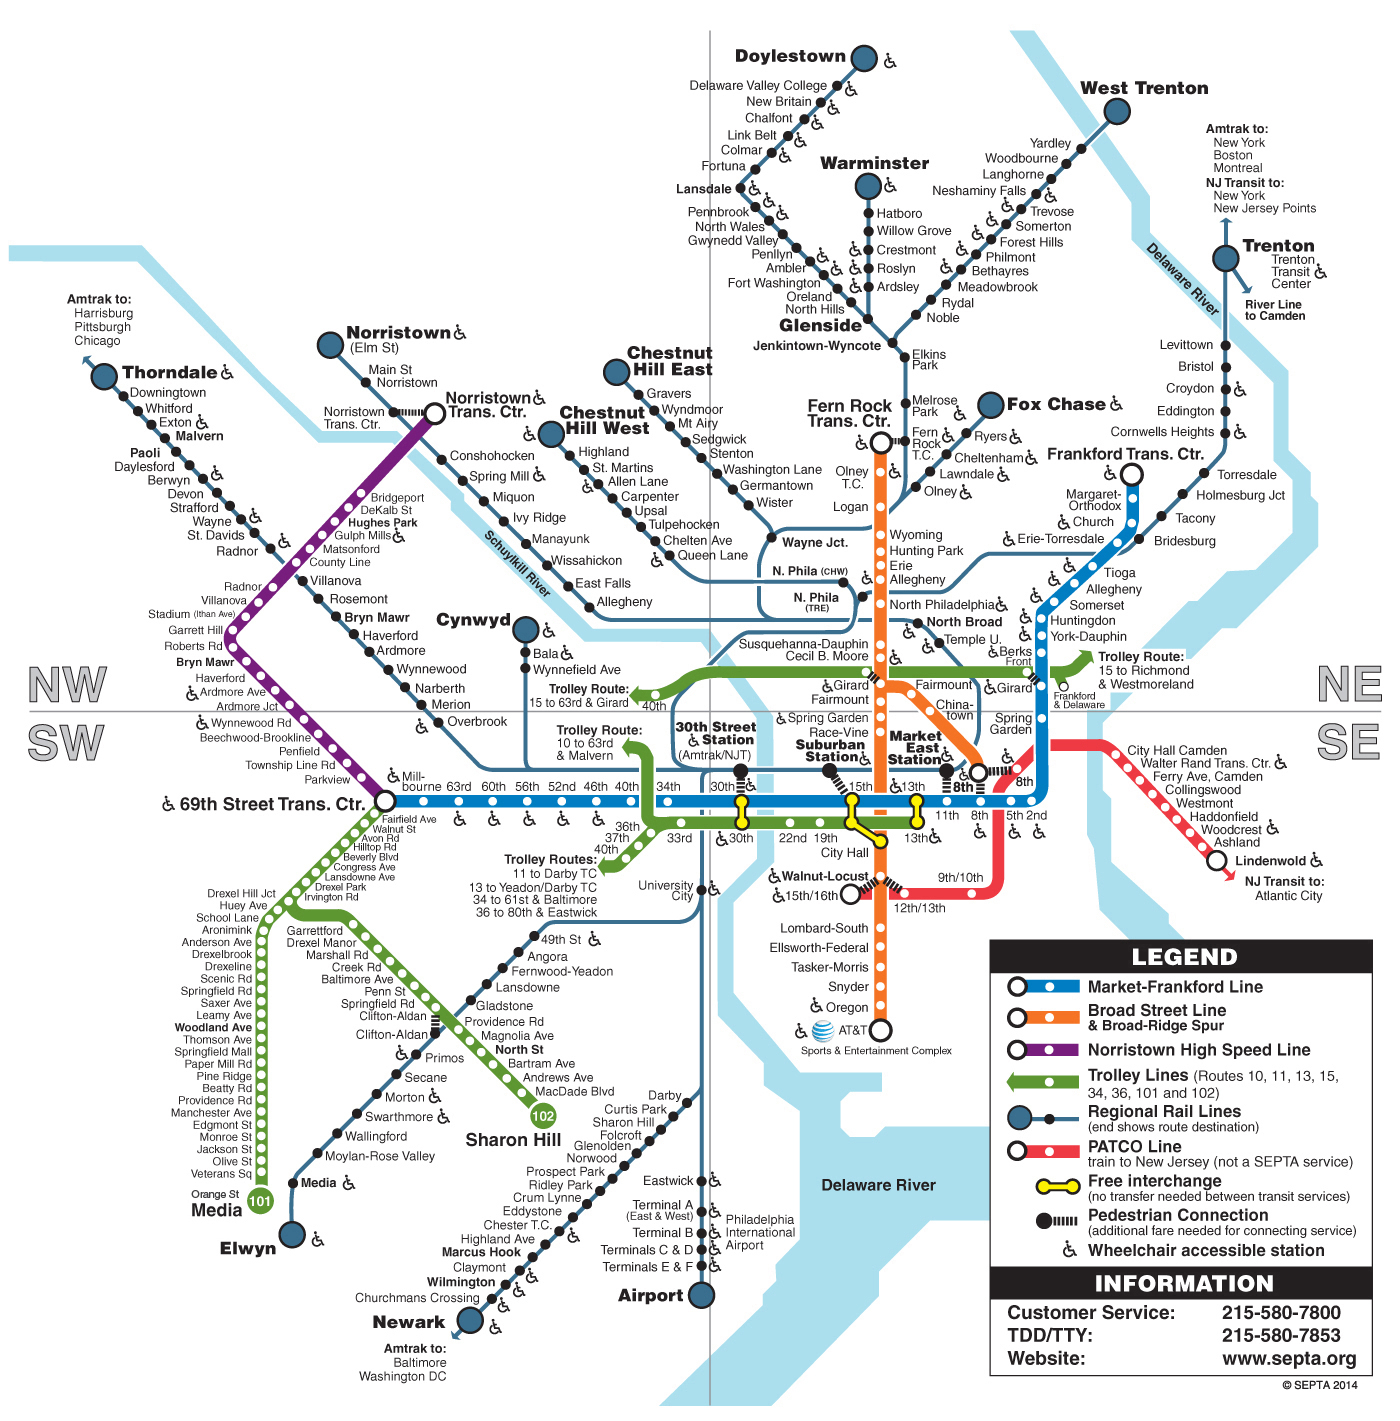 google maps public transit directions with System on Apple Talk also 135997 moreover Replacing Ios 6 Maps Hands On With Mapquest Bing Waze Google Nokia also Boston Bus Connection Map moreover Weddings.